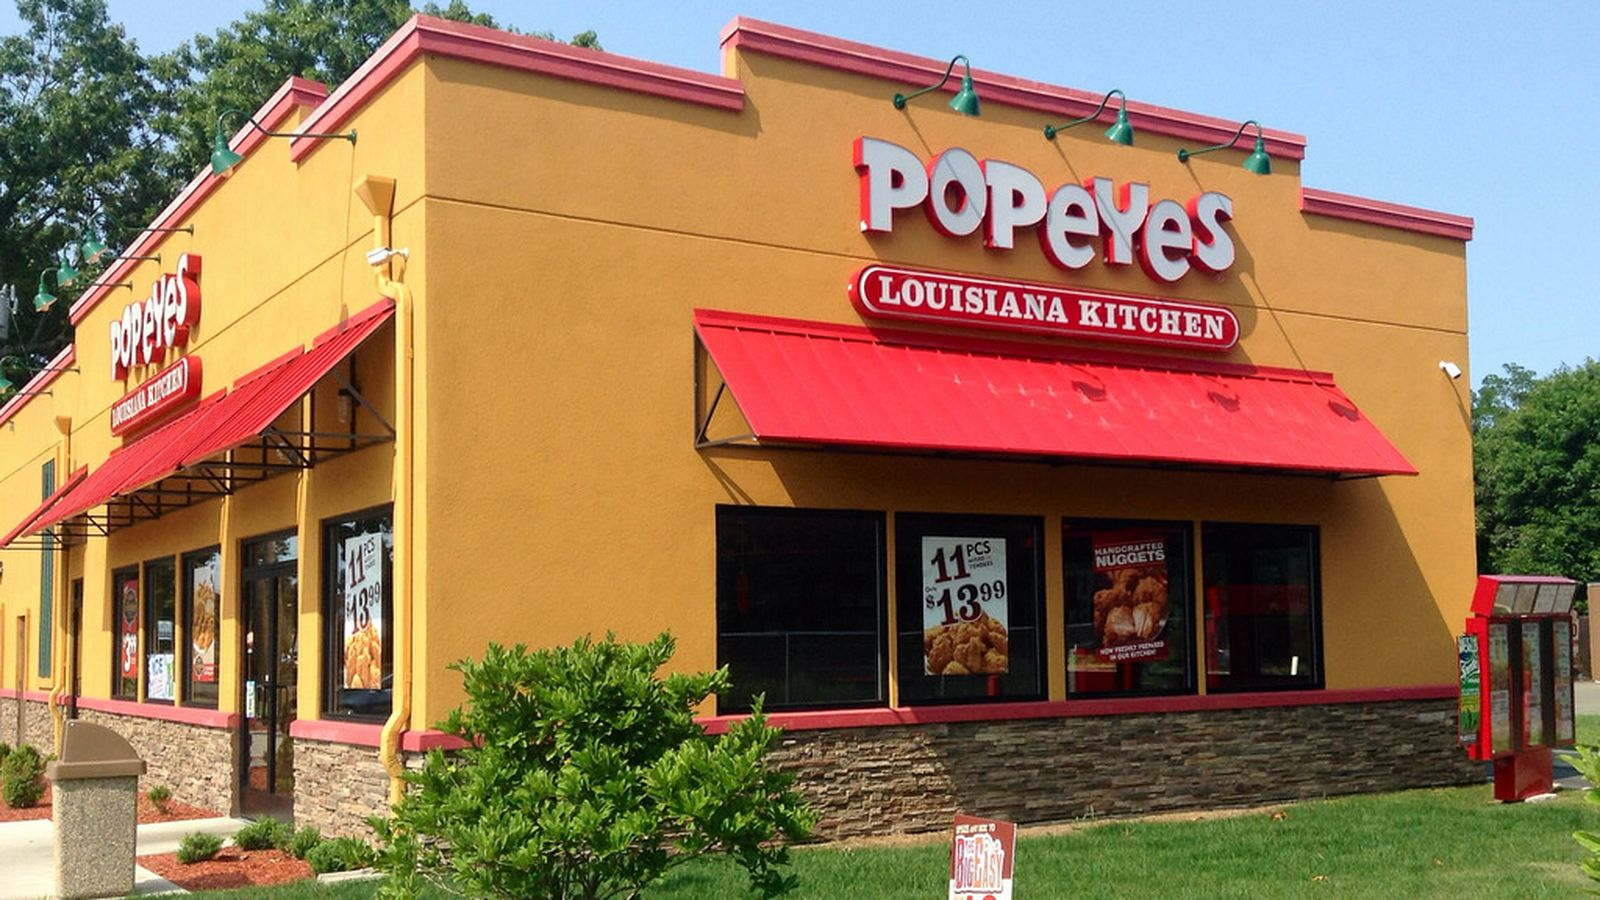 Popeyes is trying to improve its awful service eater for Popeyes louisiana kitchen austin tx